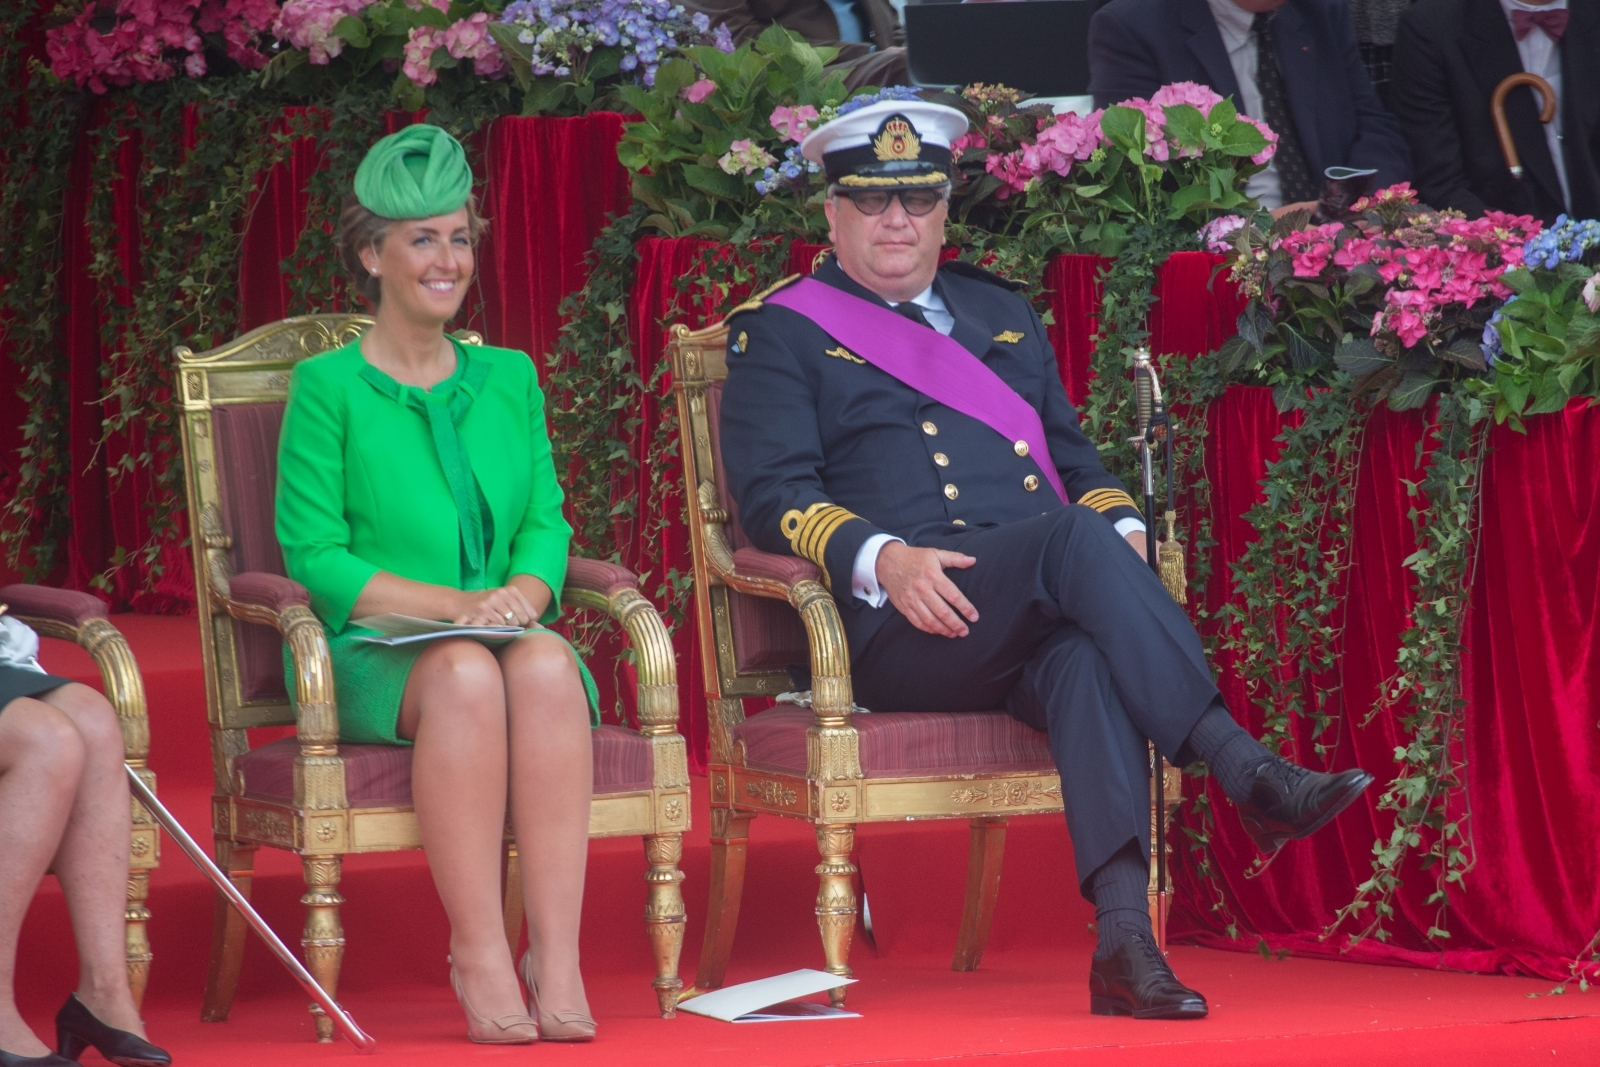 Prince Laurent of Belgium (r) and his wife Princess Claire during a Parade on the country's National Day in Brussels